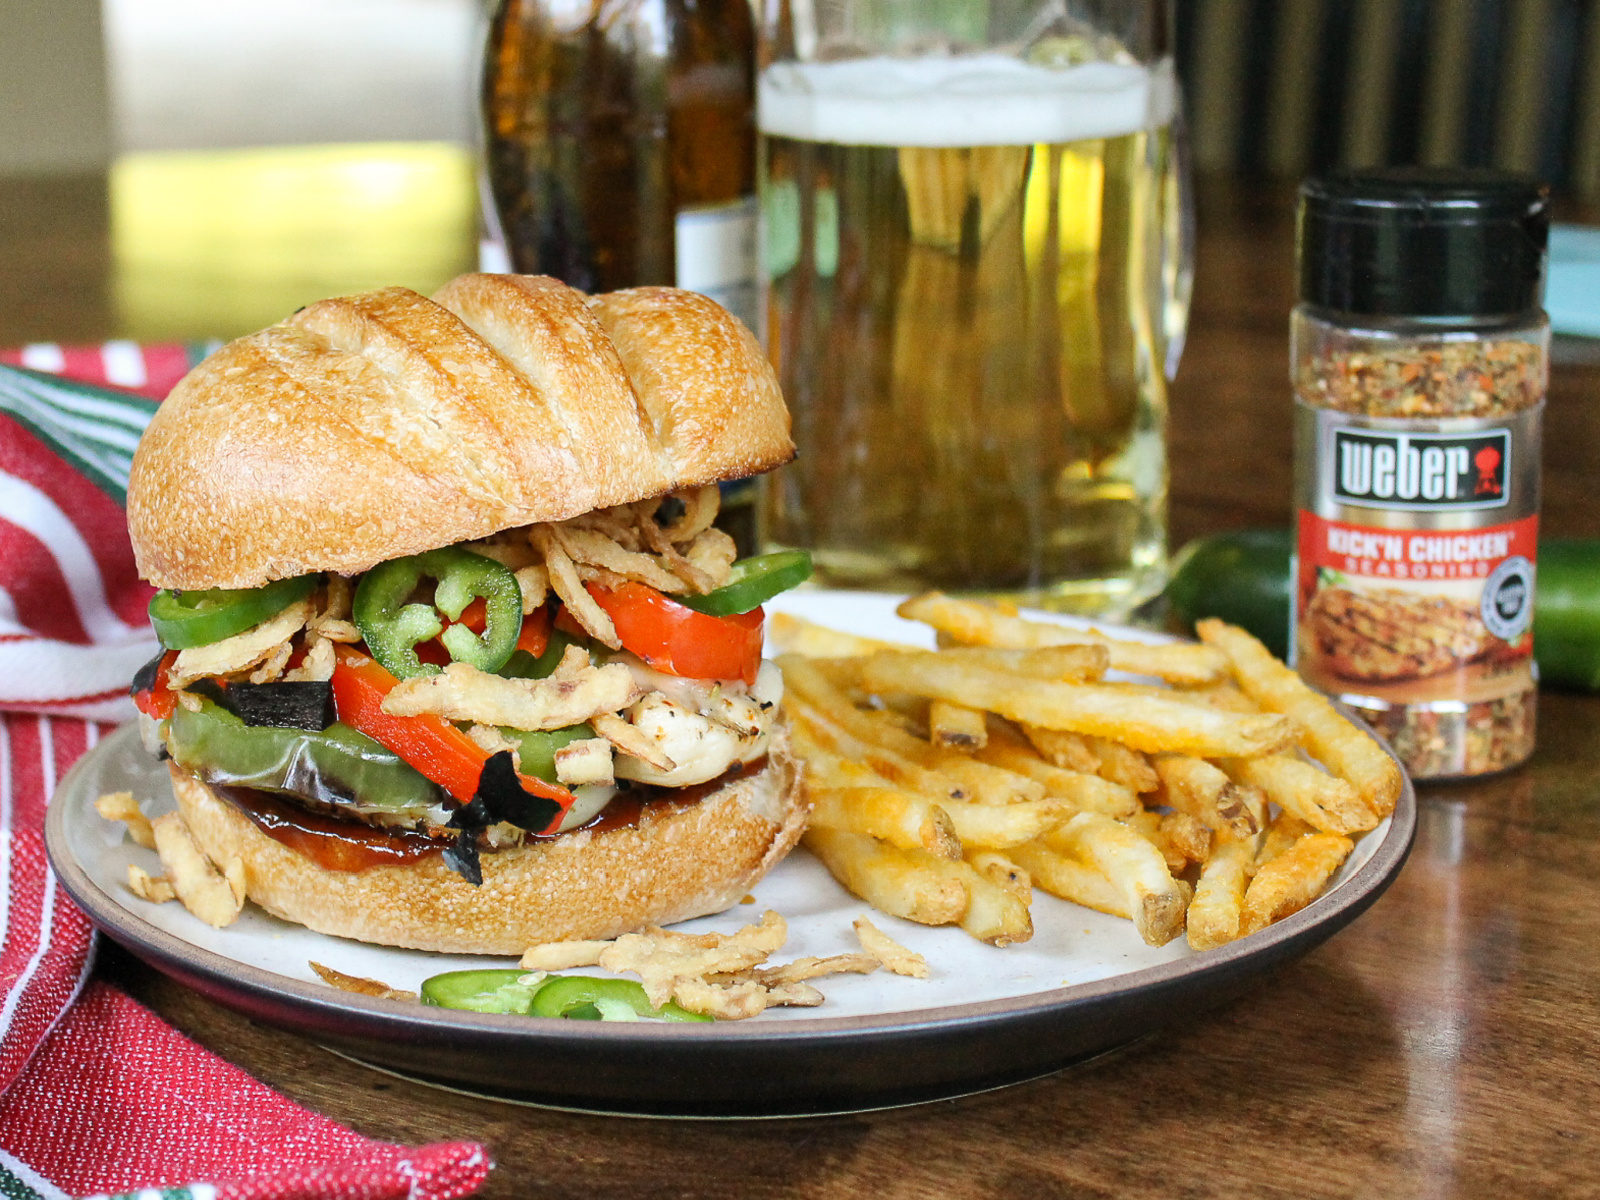 Spice Up Your Meals With Weber Seasoning - Try My Kick'n Chicken Sandwich! on I Heart Publix